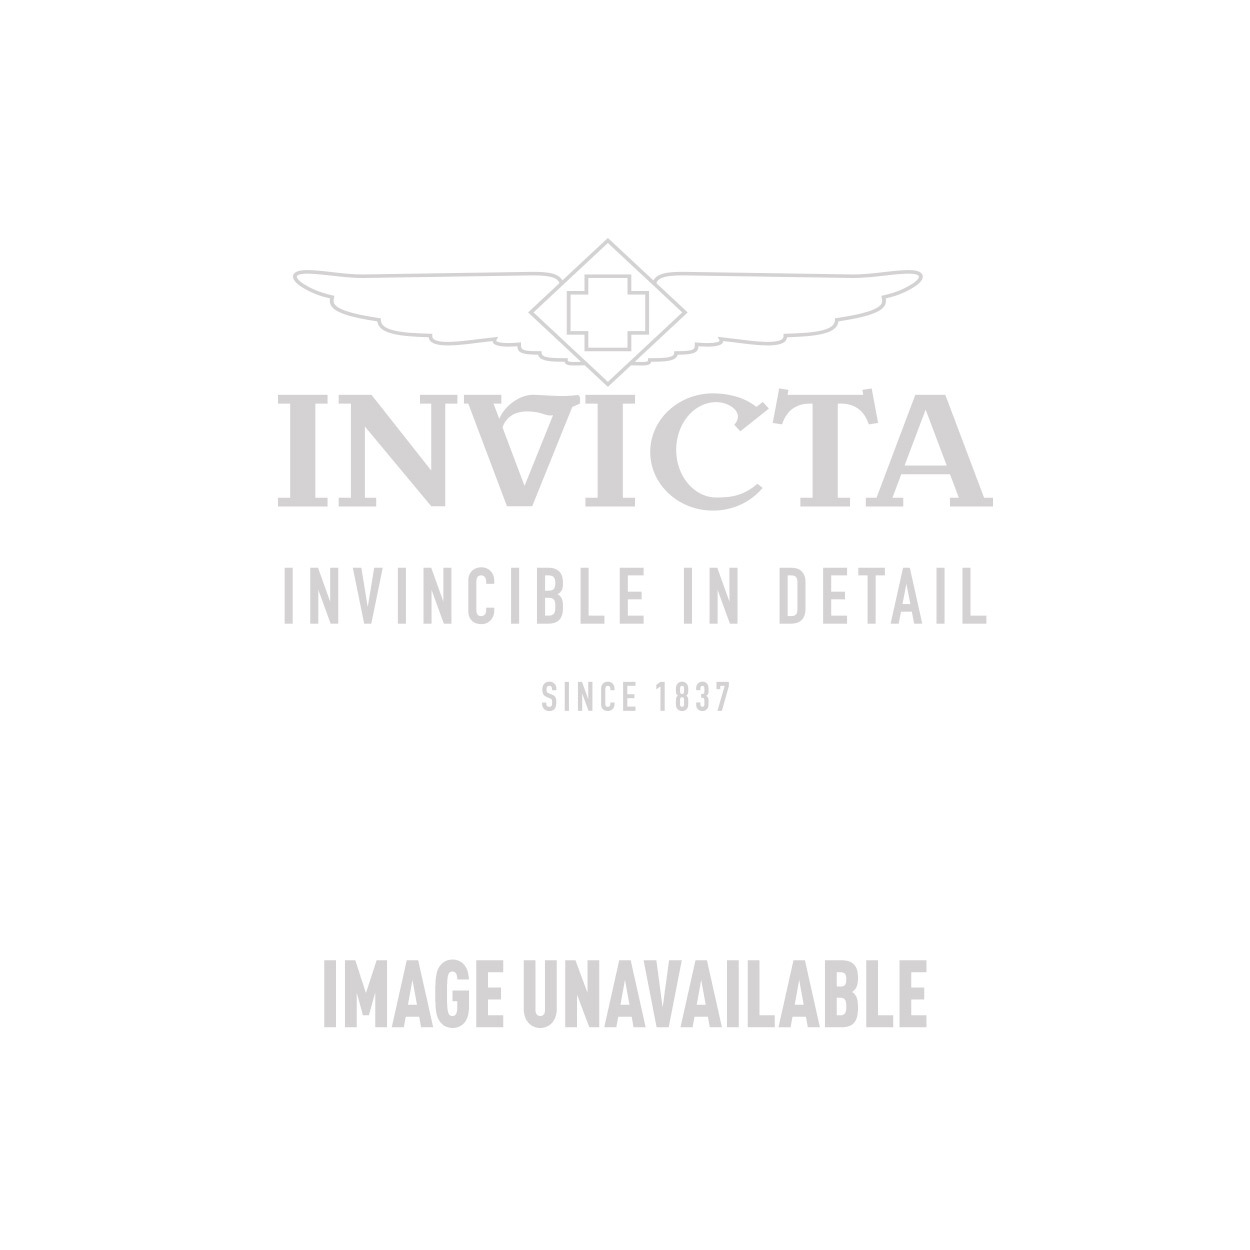 Invicta Angel Swiss Movement Quartz Watch - Gold case with Gold tone Stainless Steel band - Model 17493